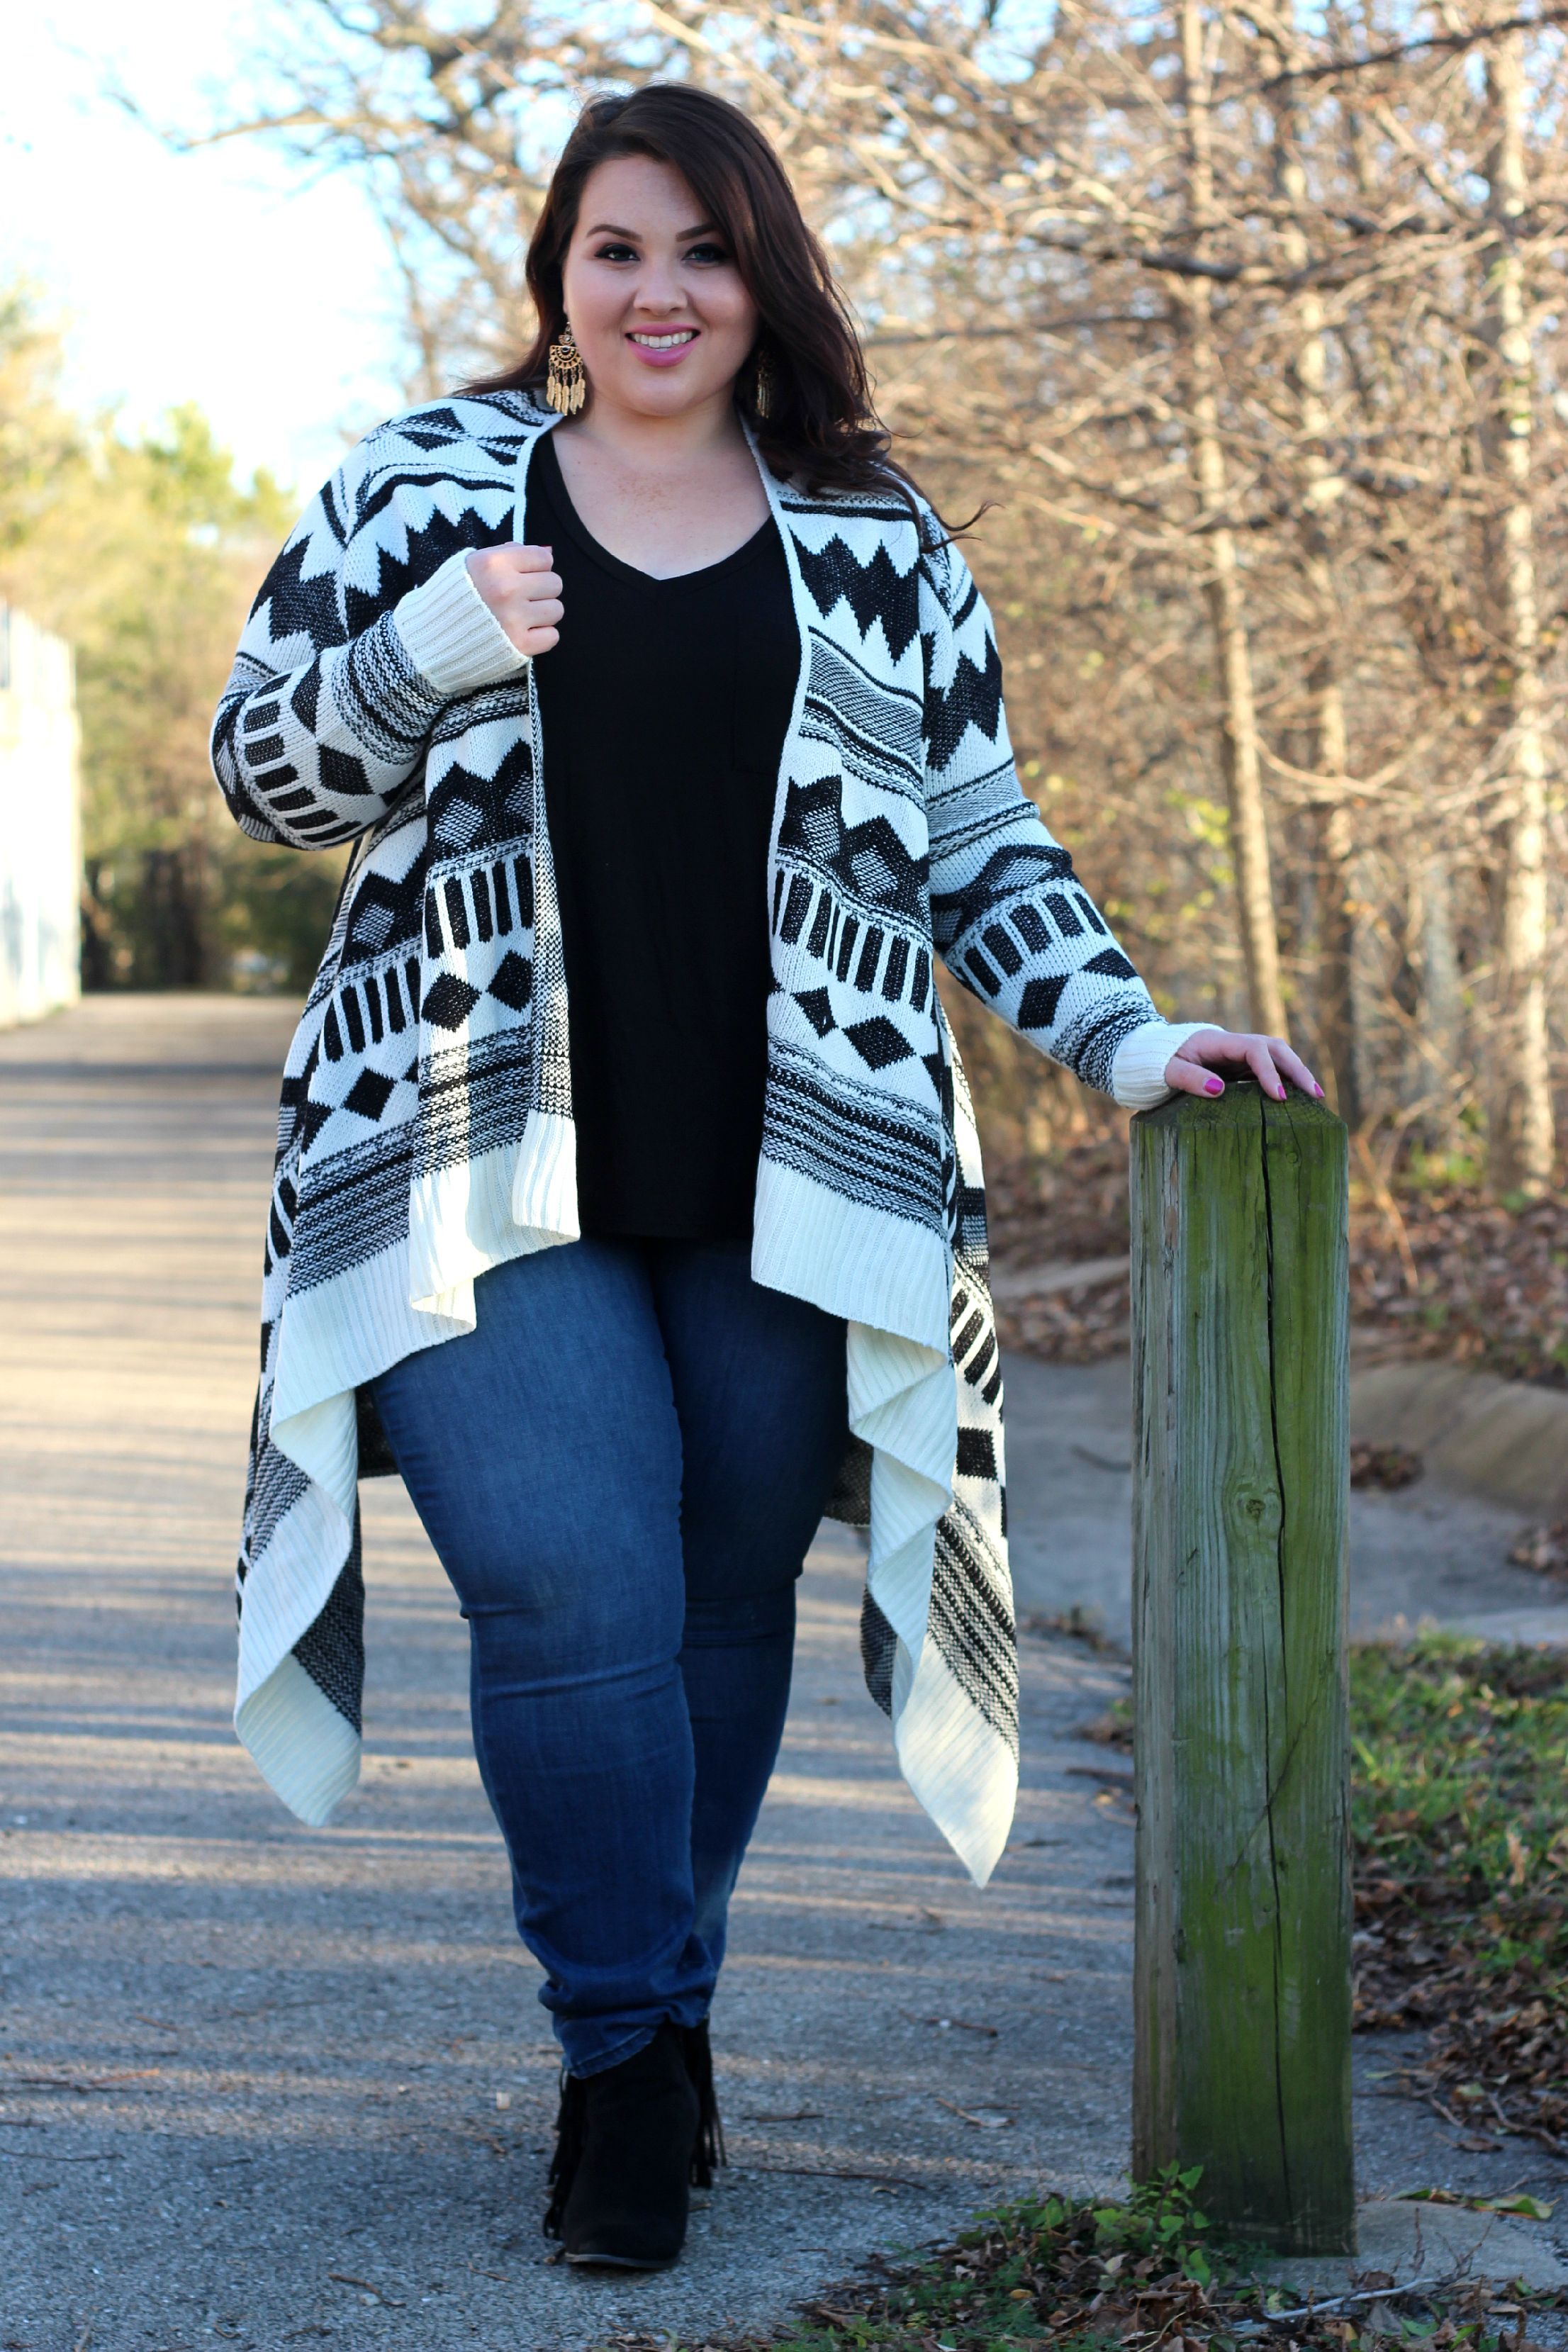 Plus Size Fashion | Plus Size Fashion | Pinterest | Fashion Clothes and Curvy